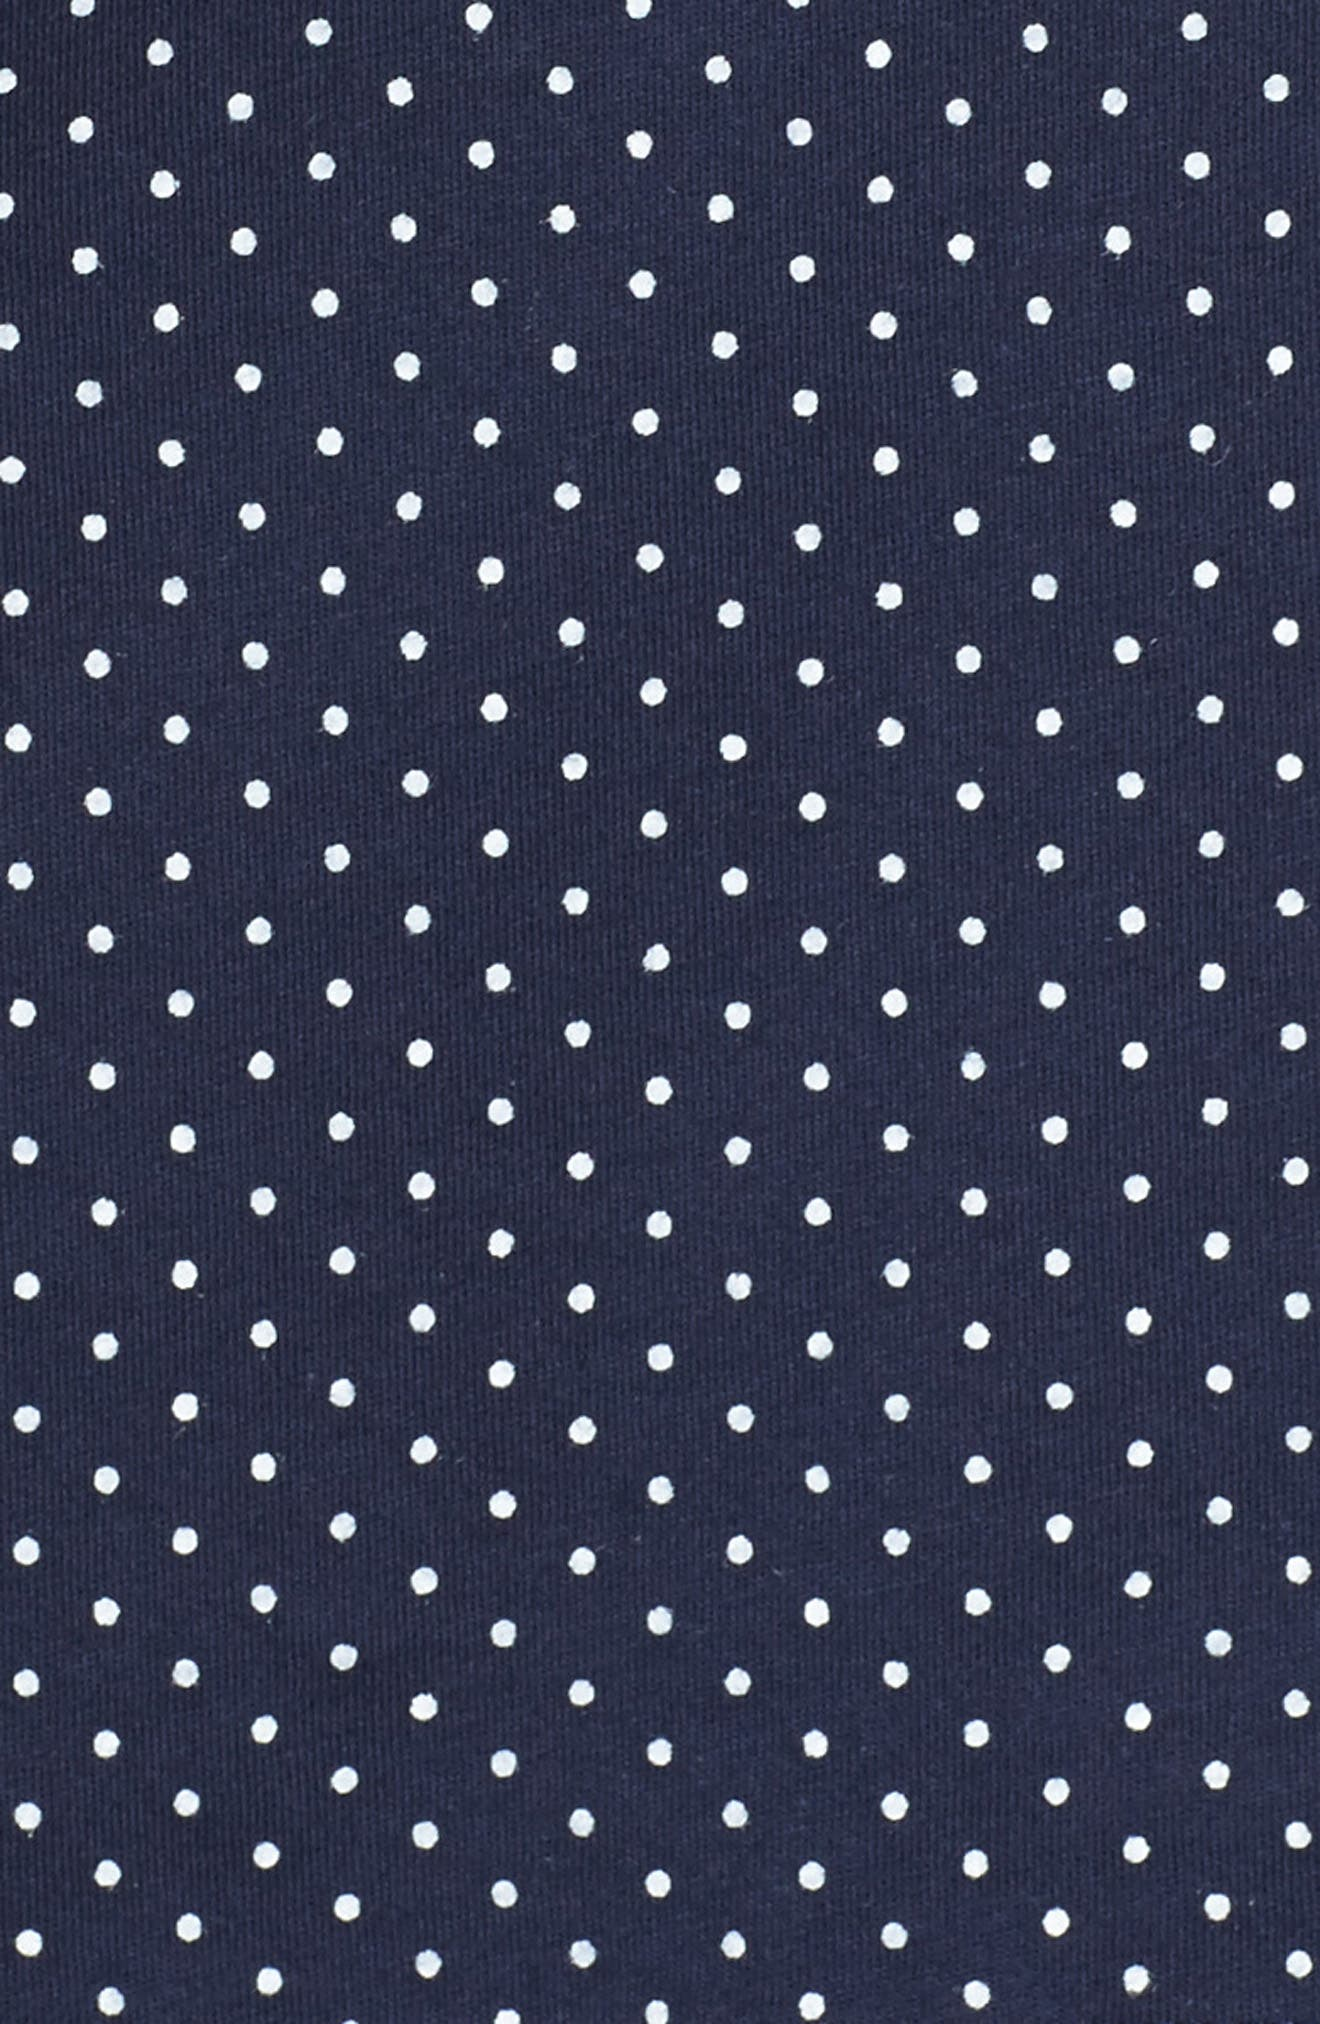 LAUREN RALPH LAUREN,                             Bermuda Pajamas,                             Alternate thumbnail 5, color,                             NAVY DOT